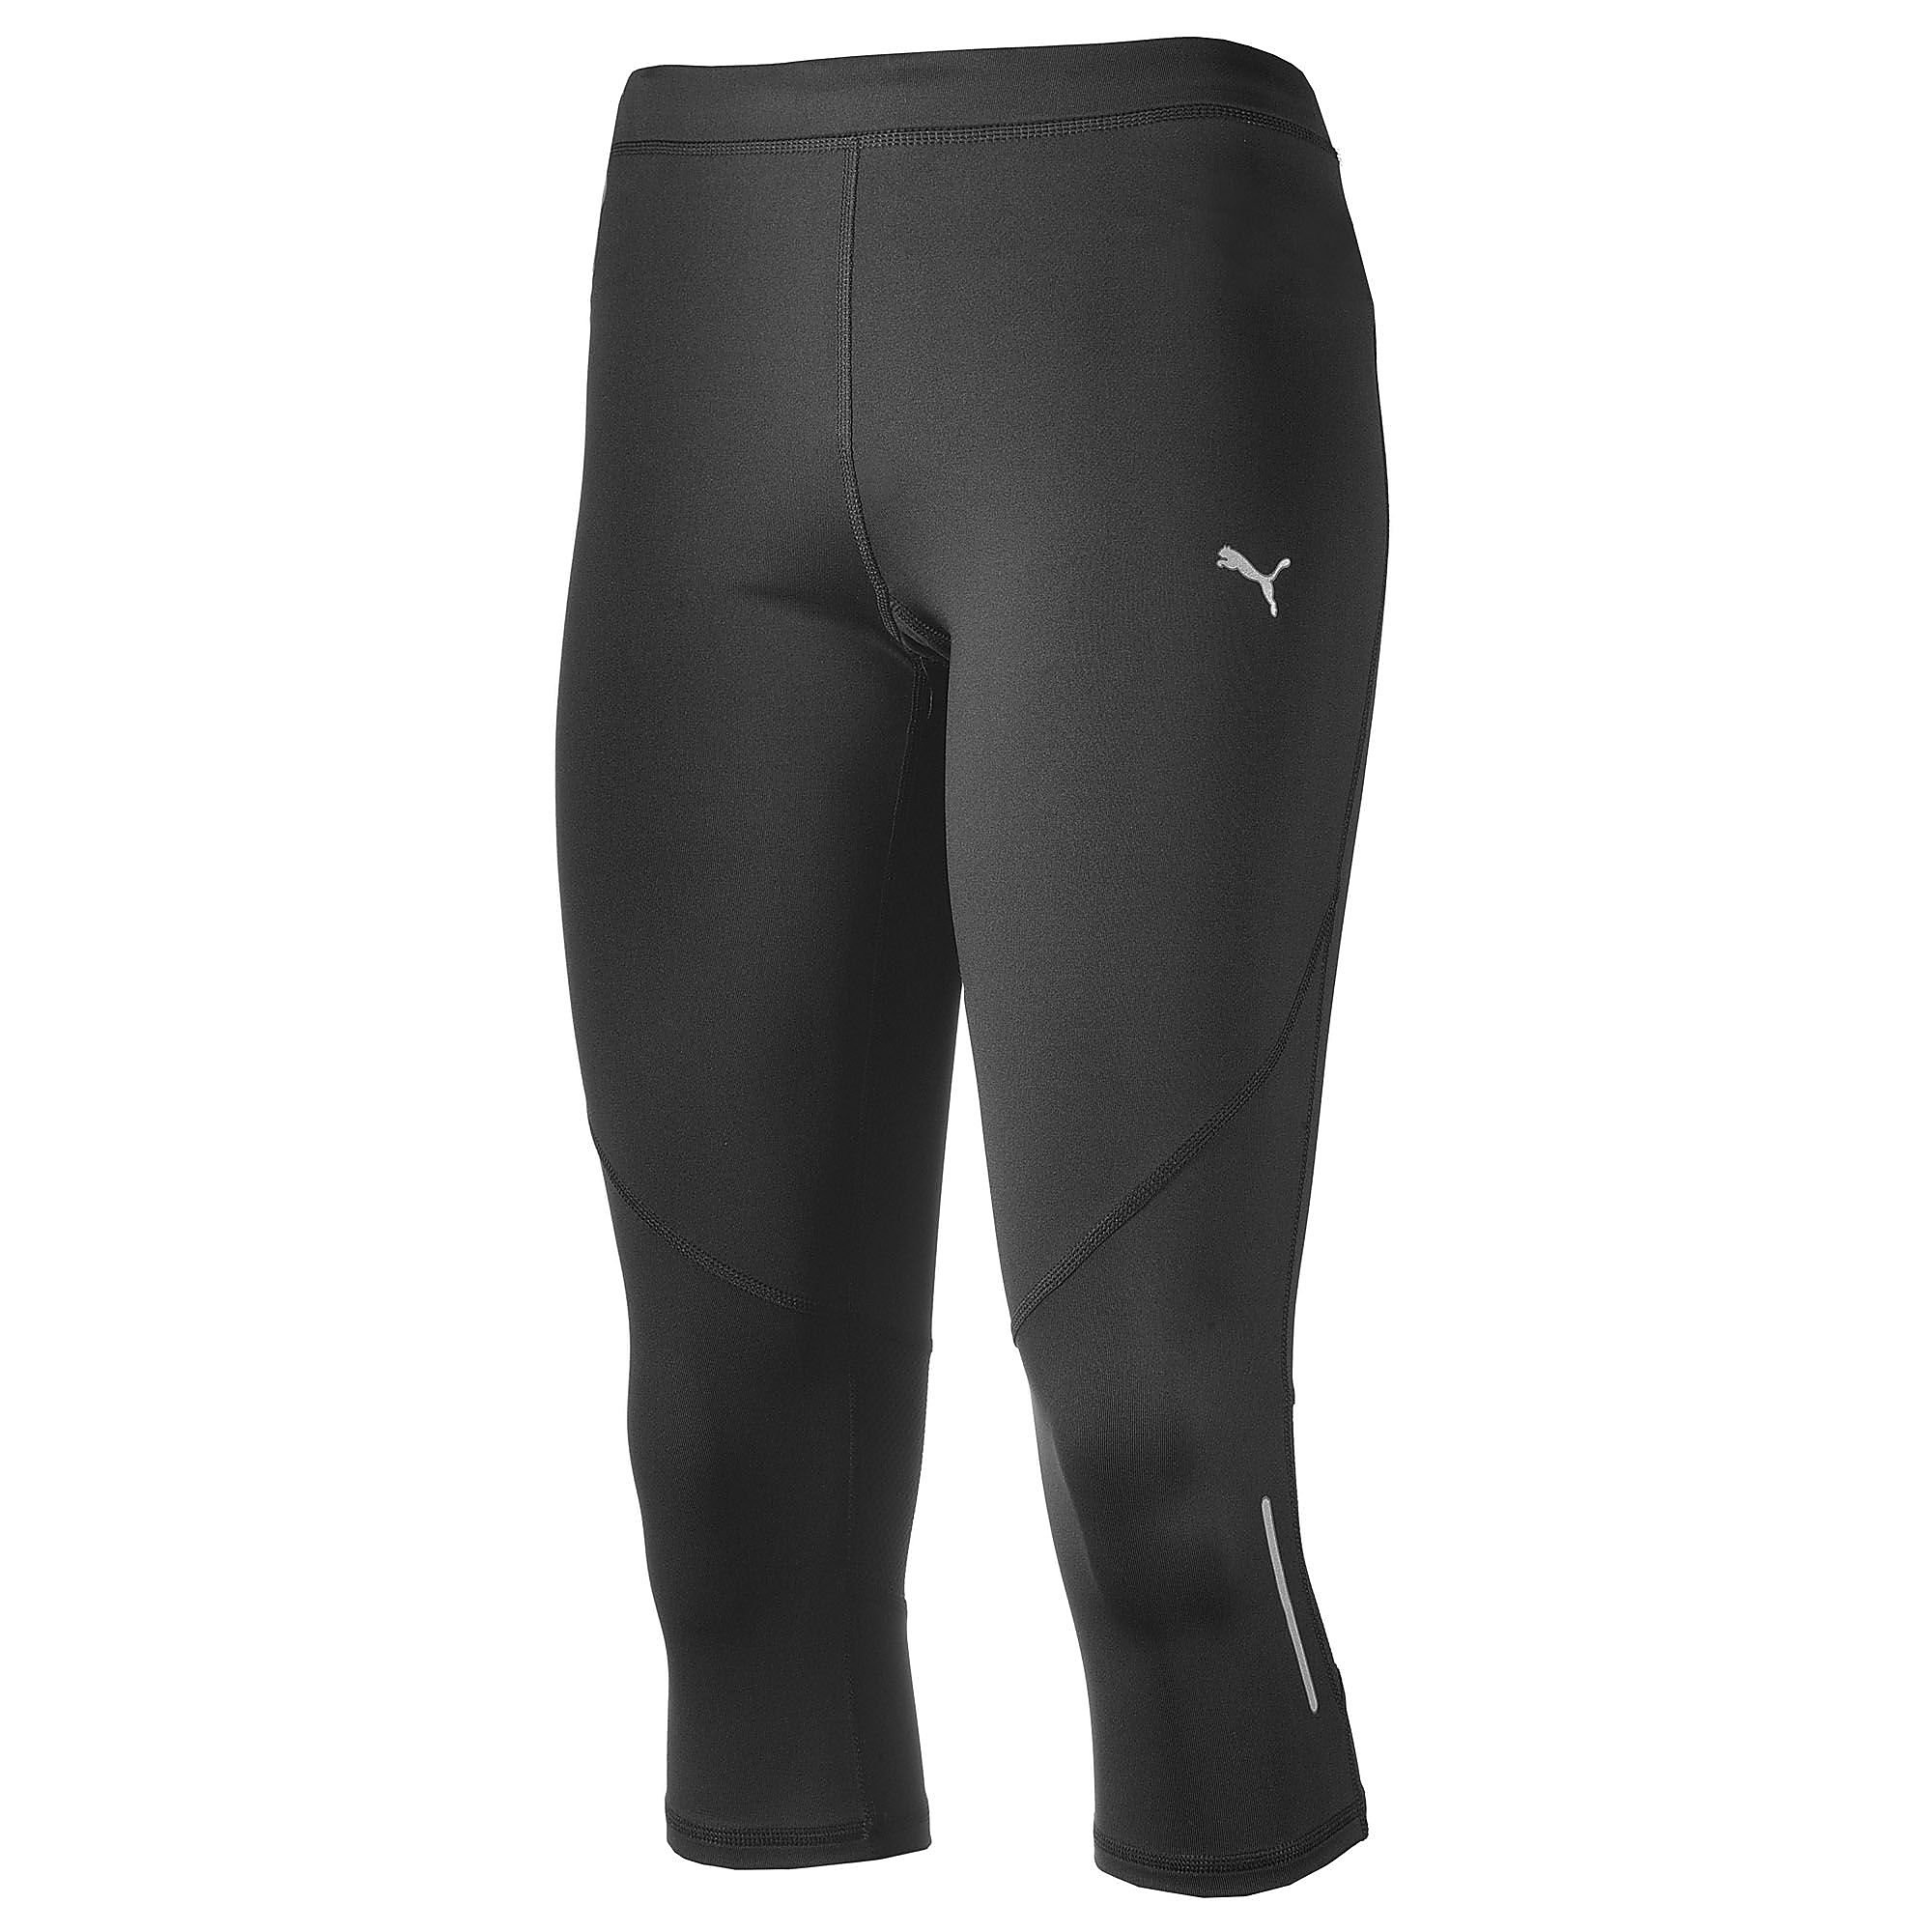 PUMA PR PURE 3/4 TIGHT W